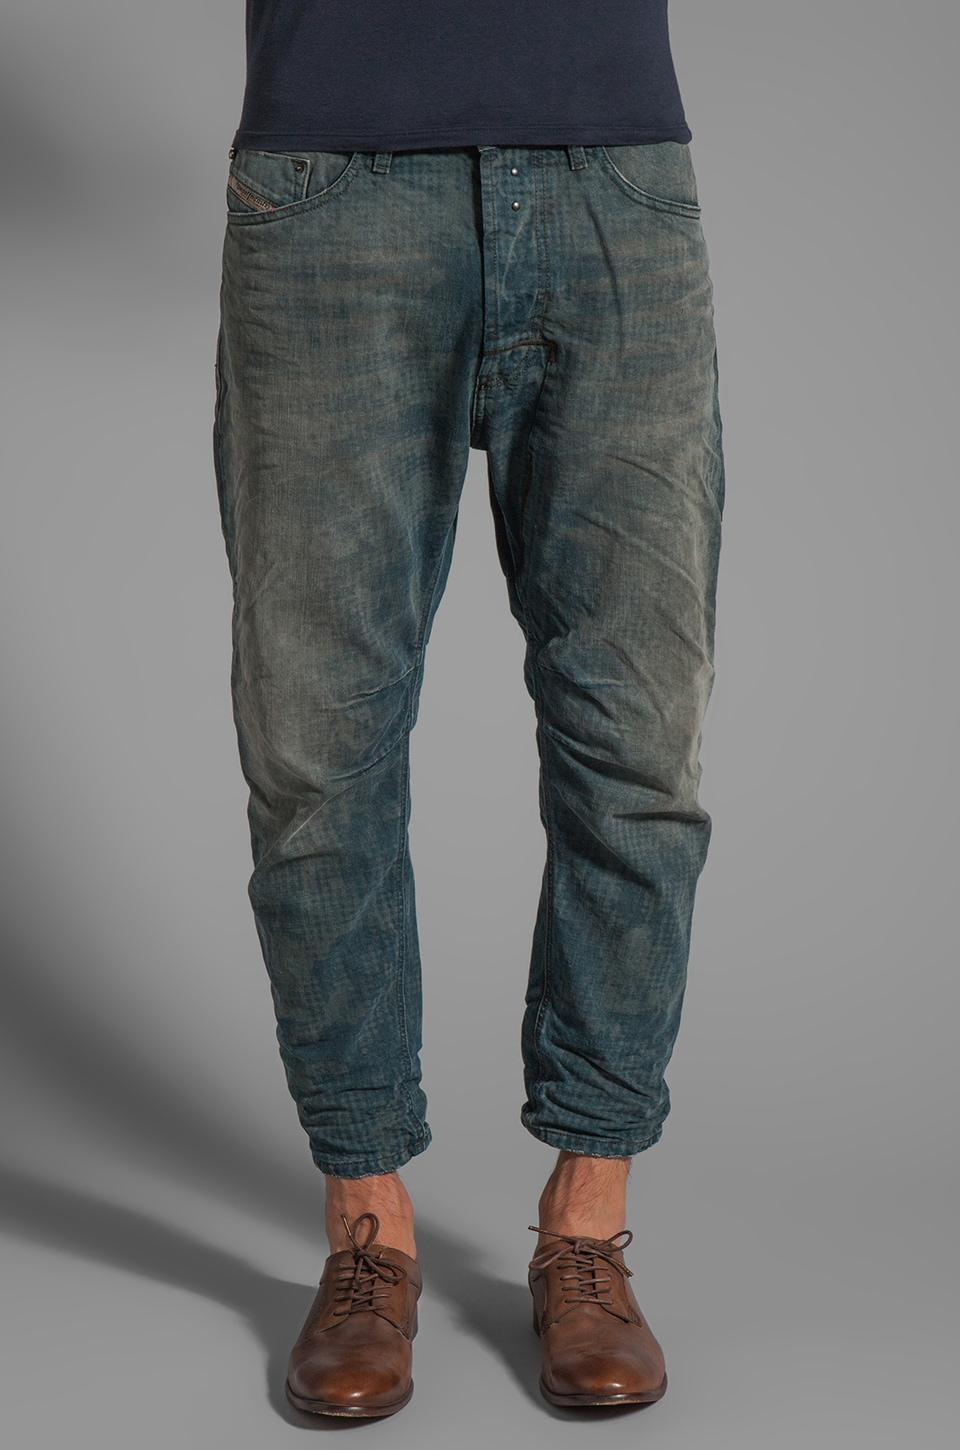 Diesel Narrot in Denim